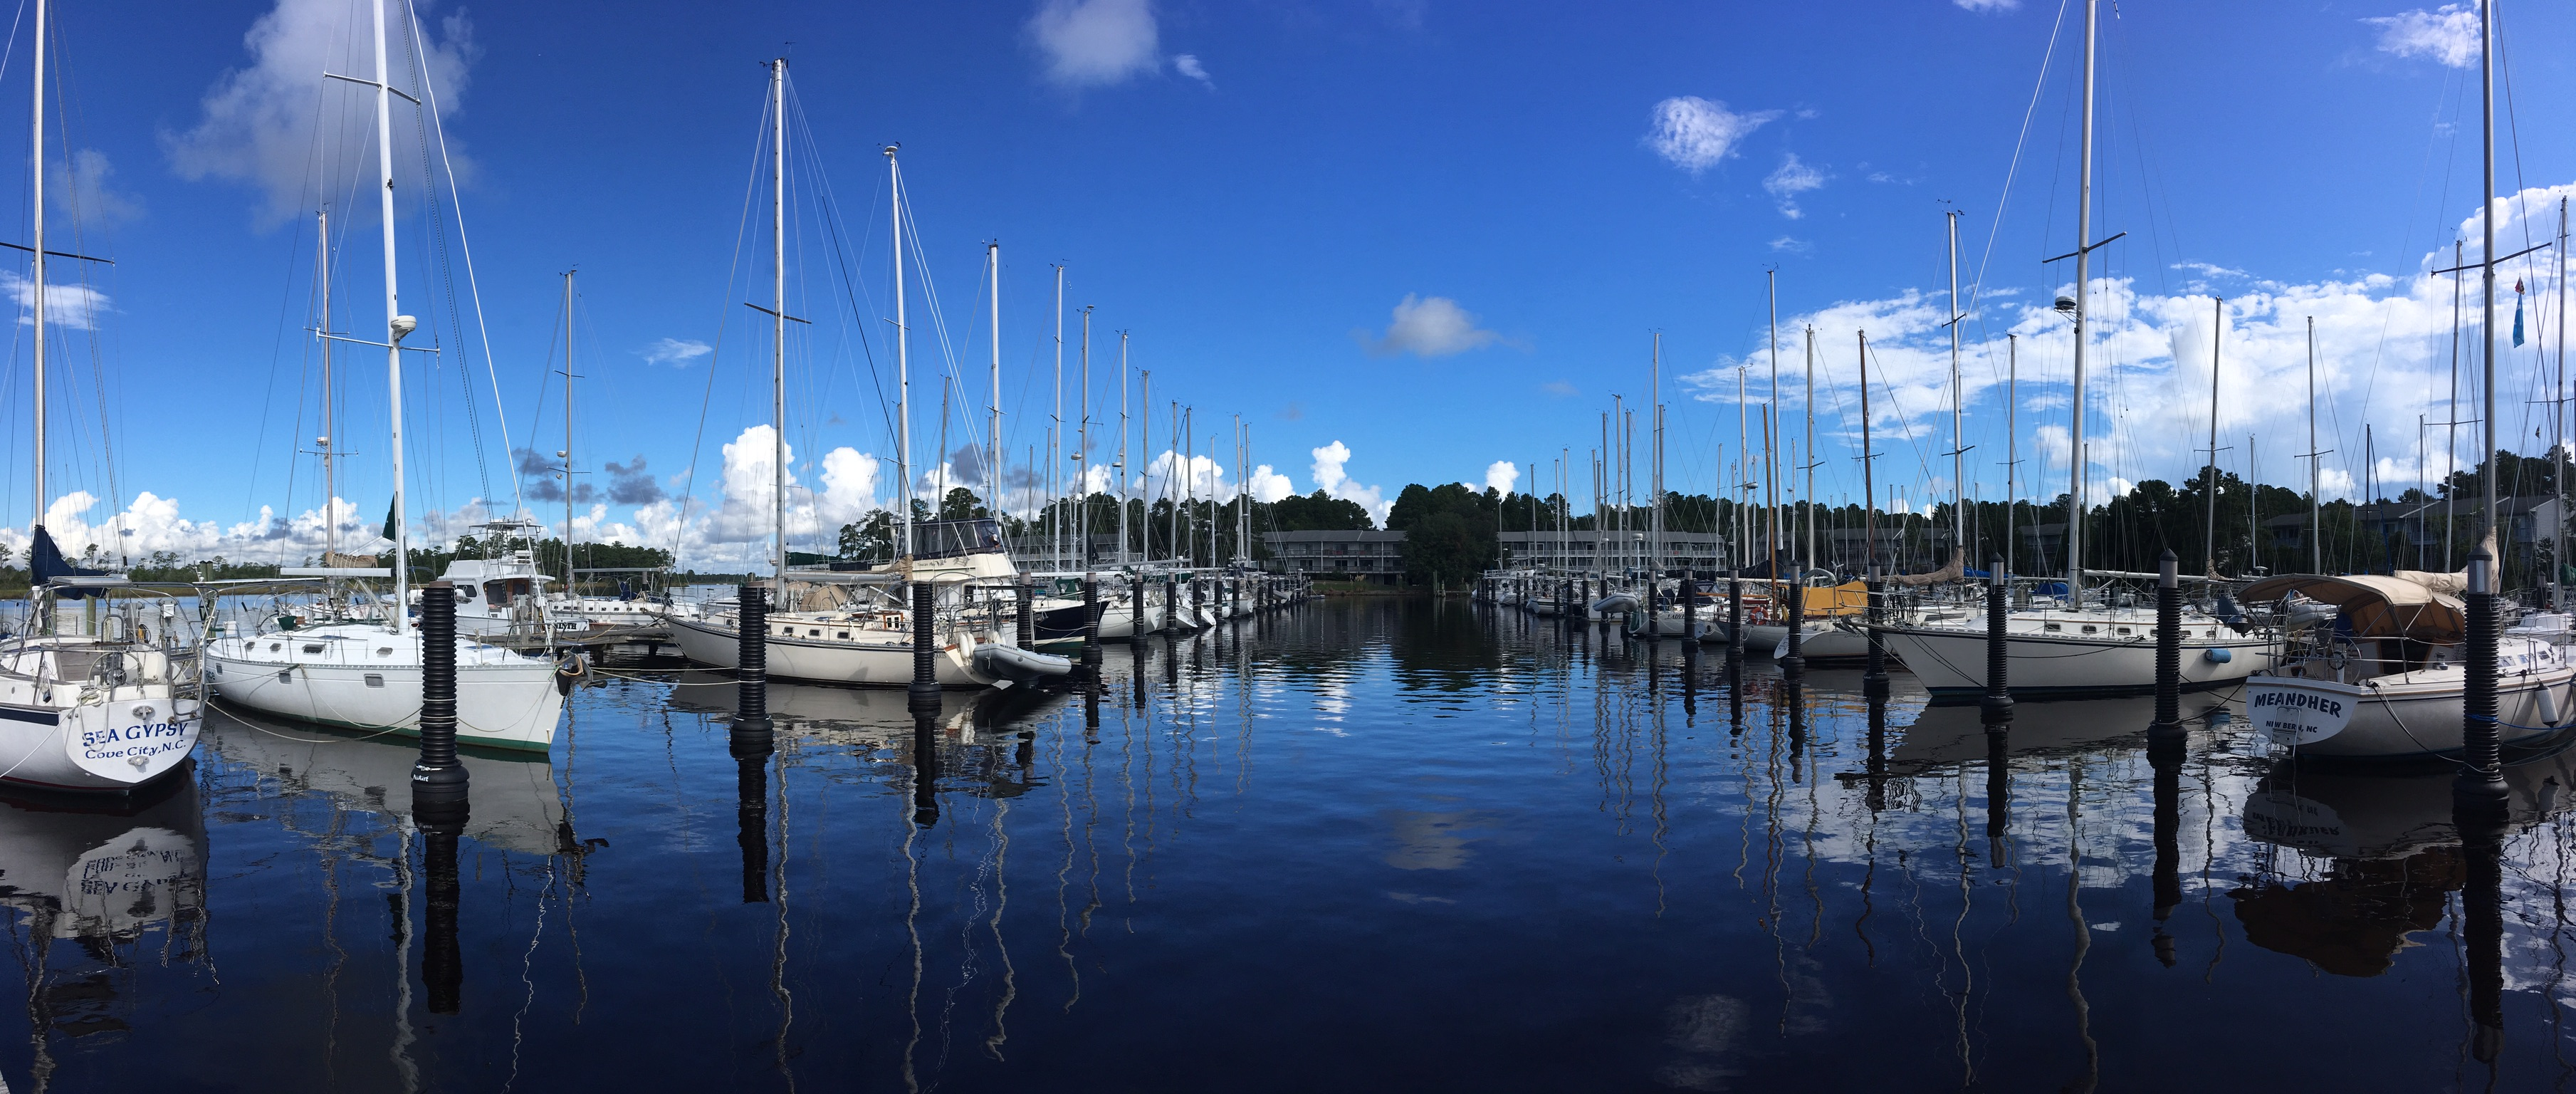 Northwest Creek Marina Piers | New Northeast Marinas Added | Snag-A-Slip